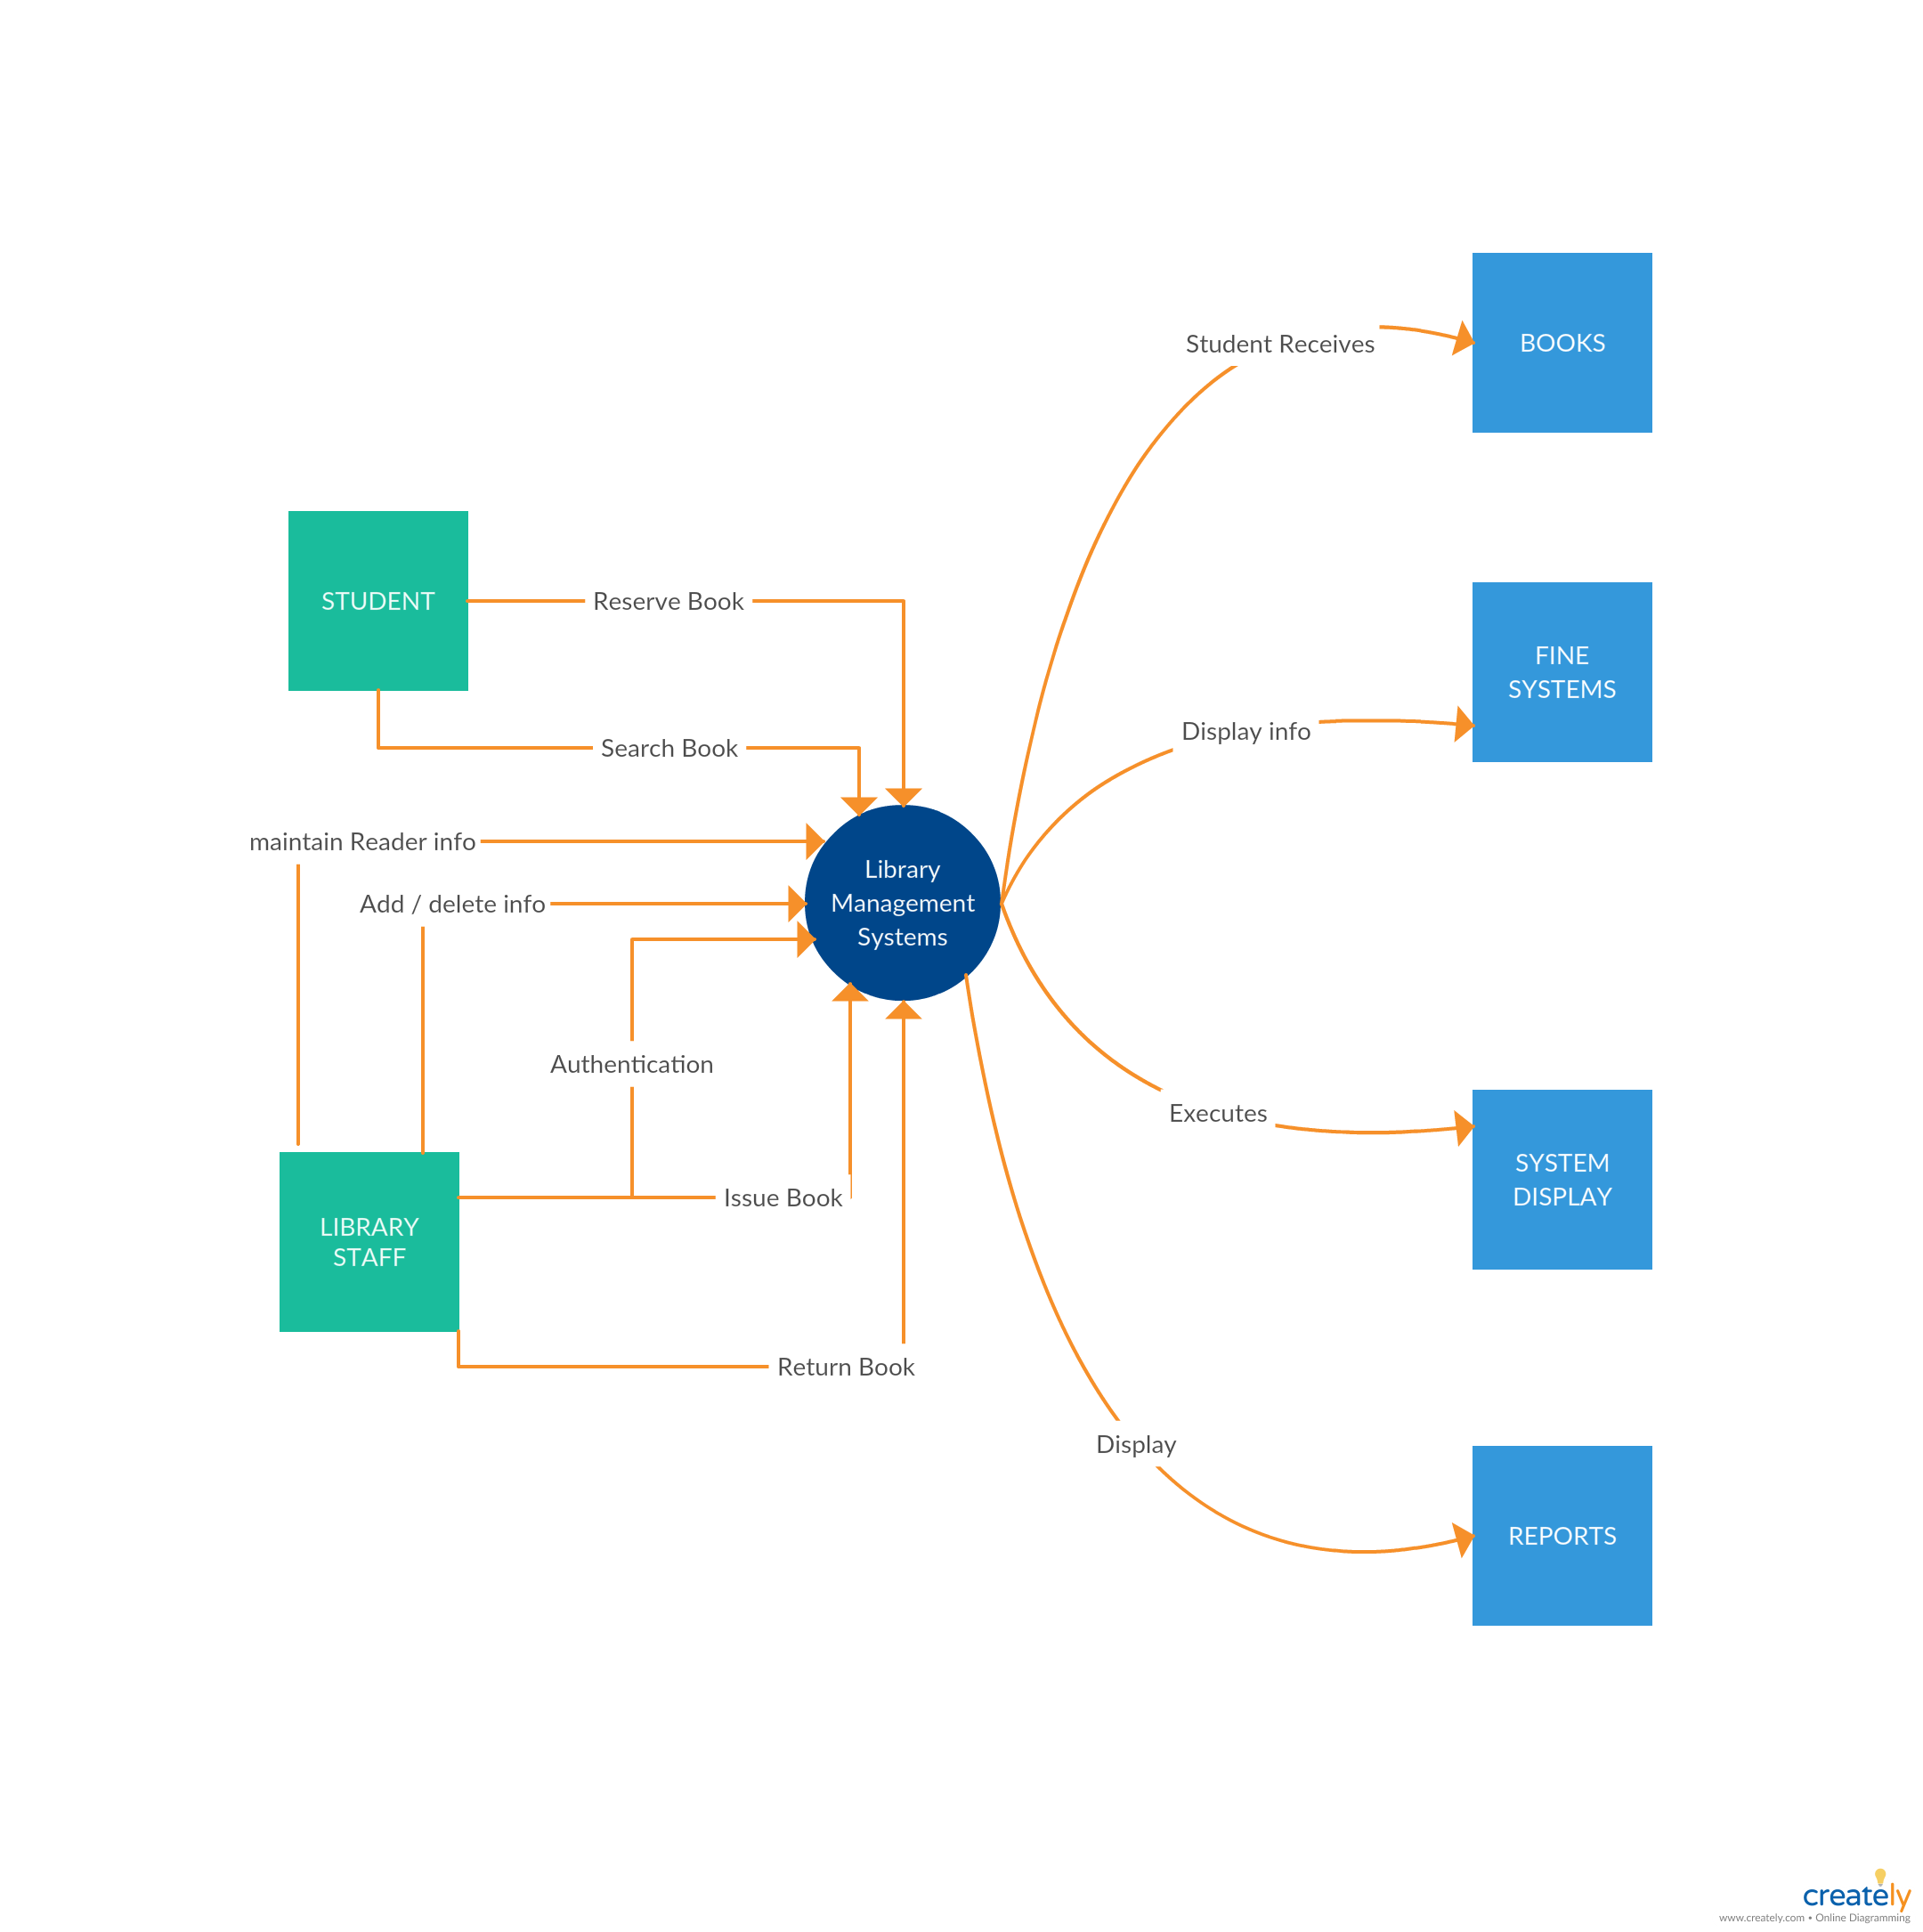 Data Flow Diagram Template Of Library Management System Context Diagram Click On The Image To Use This As A Templa Data Flow Diagram Activity Diagram Diagram